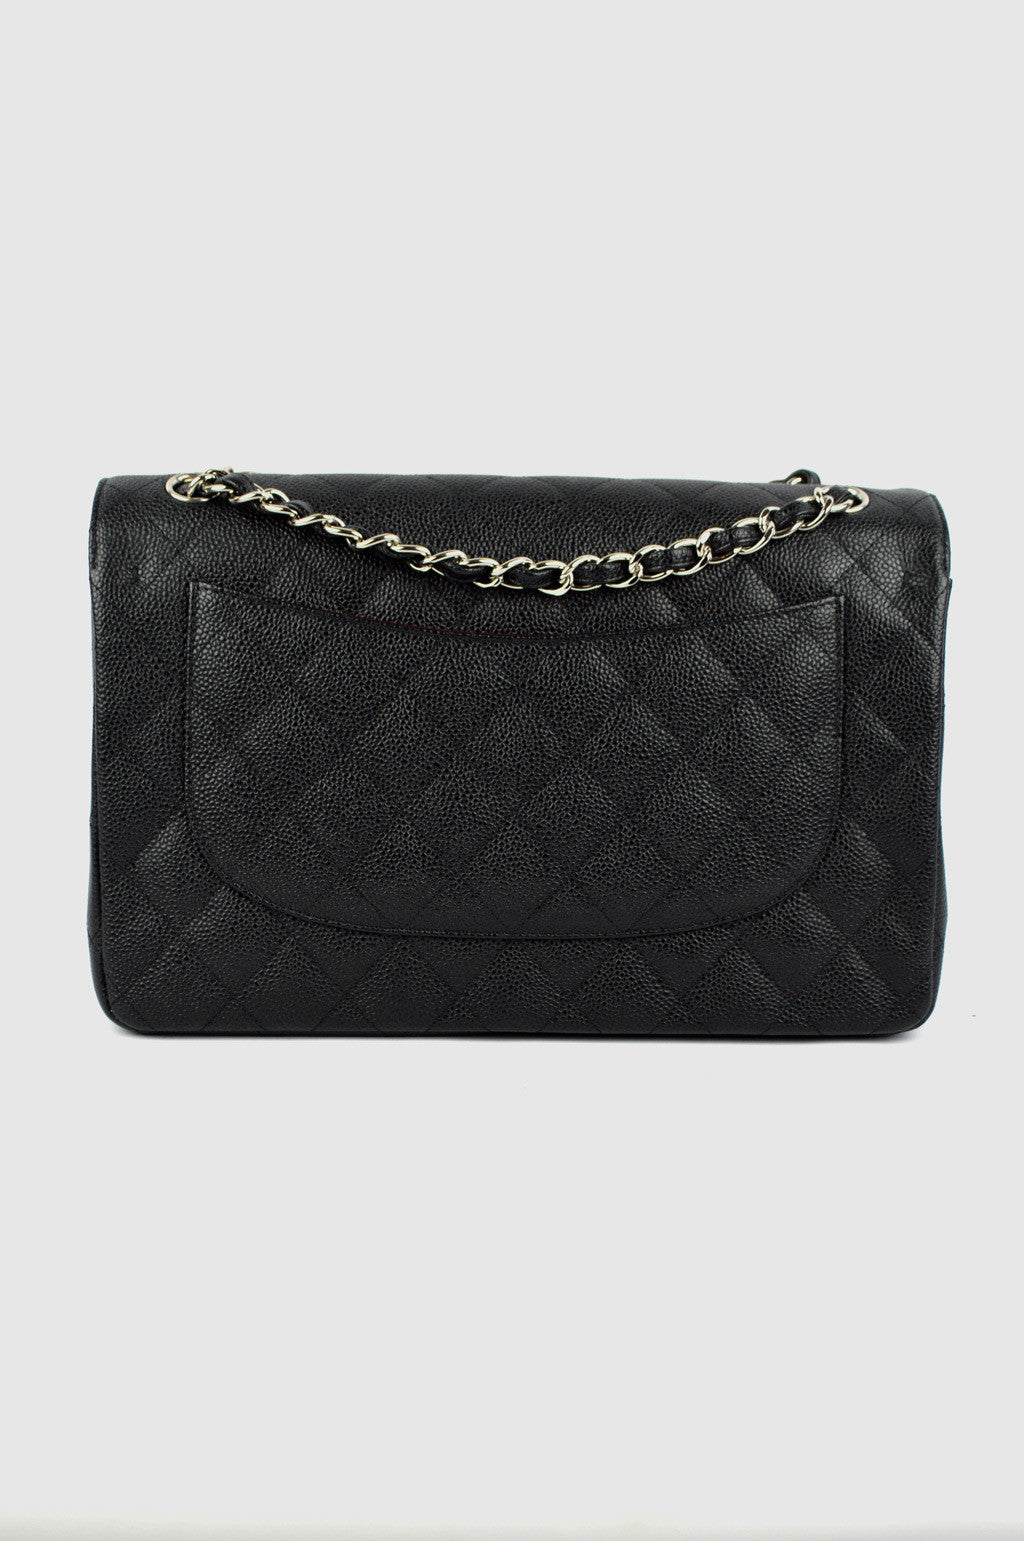 Black Caviar Jumbo Double Flap Bag SHW